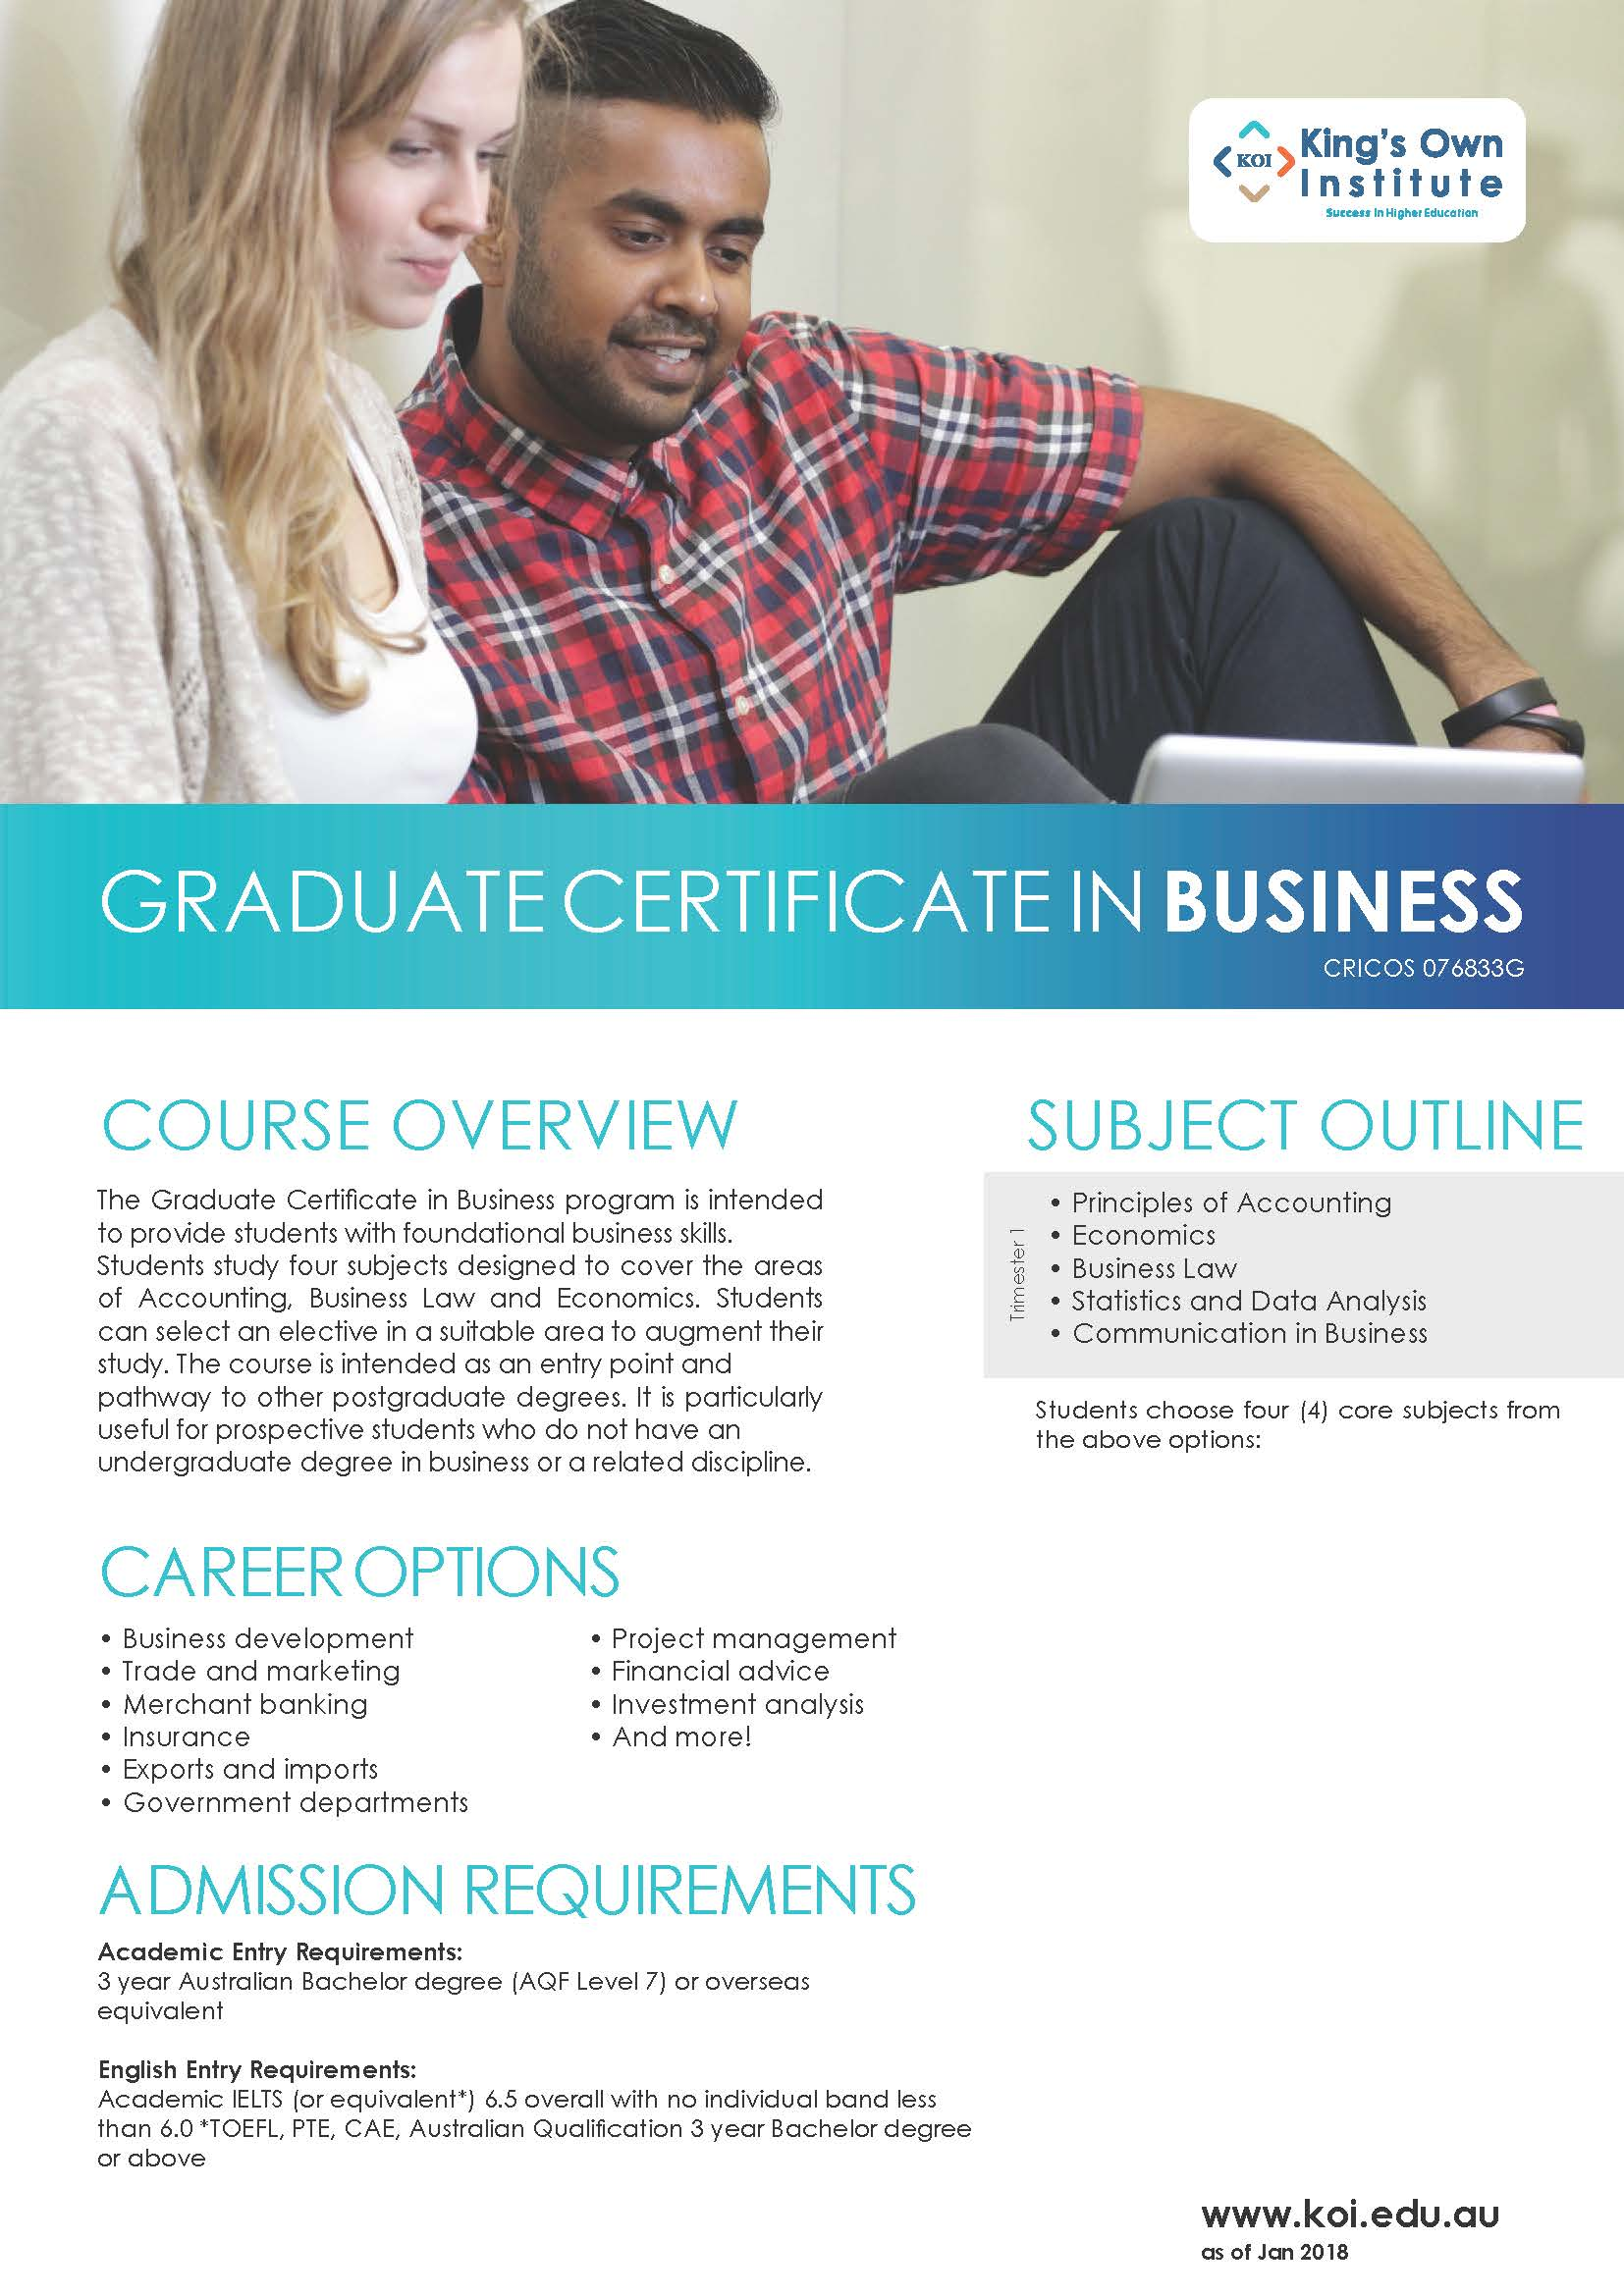 GRADUATE CERTIFICATE IN BUSINESS